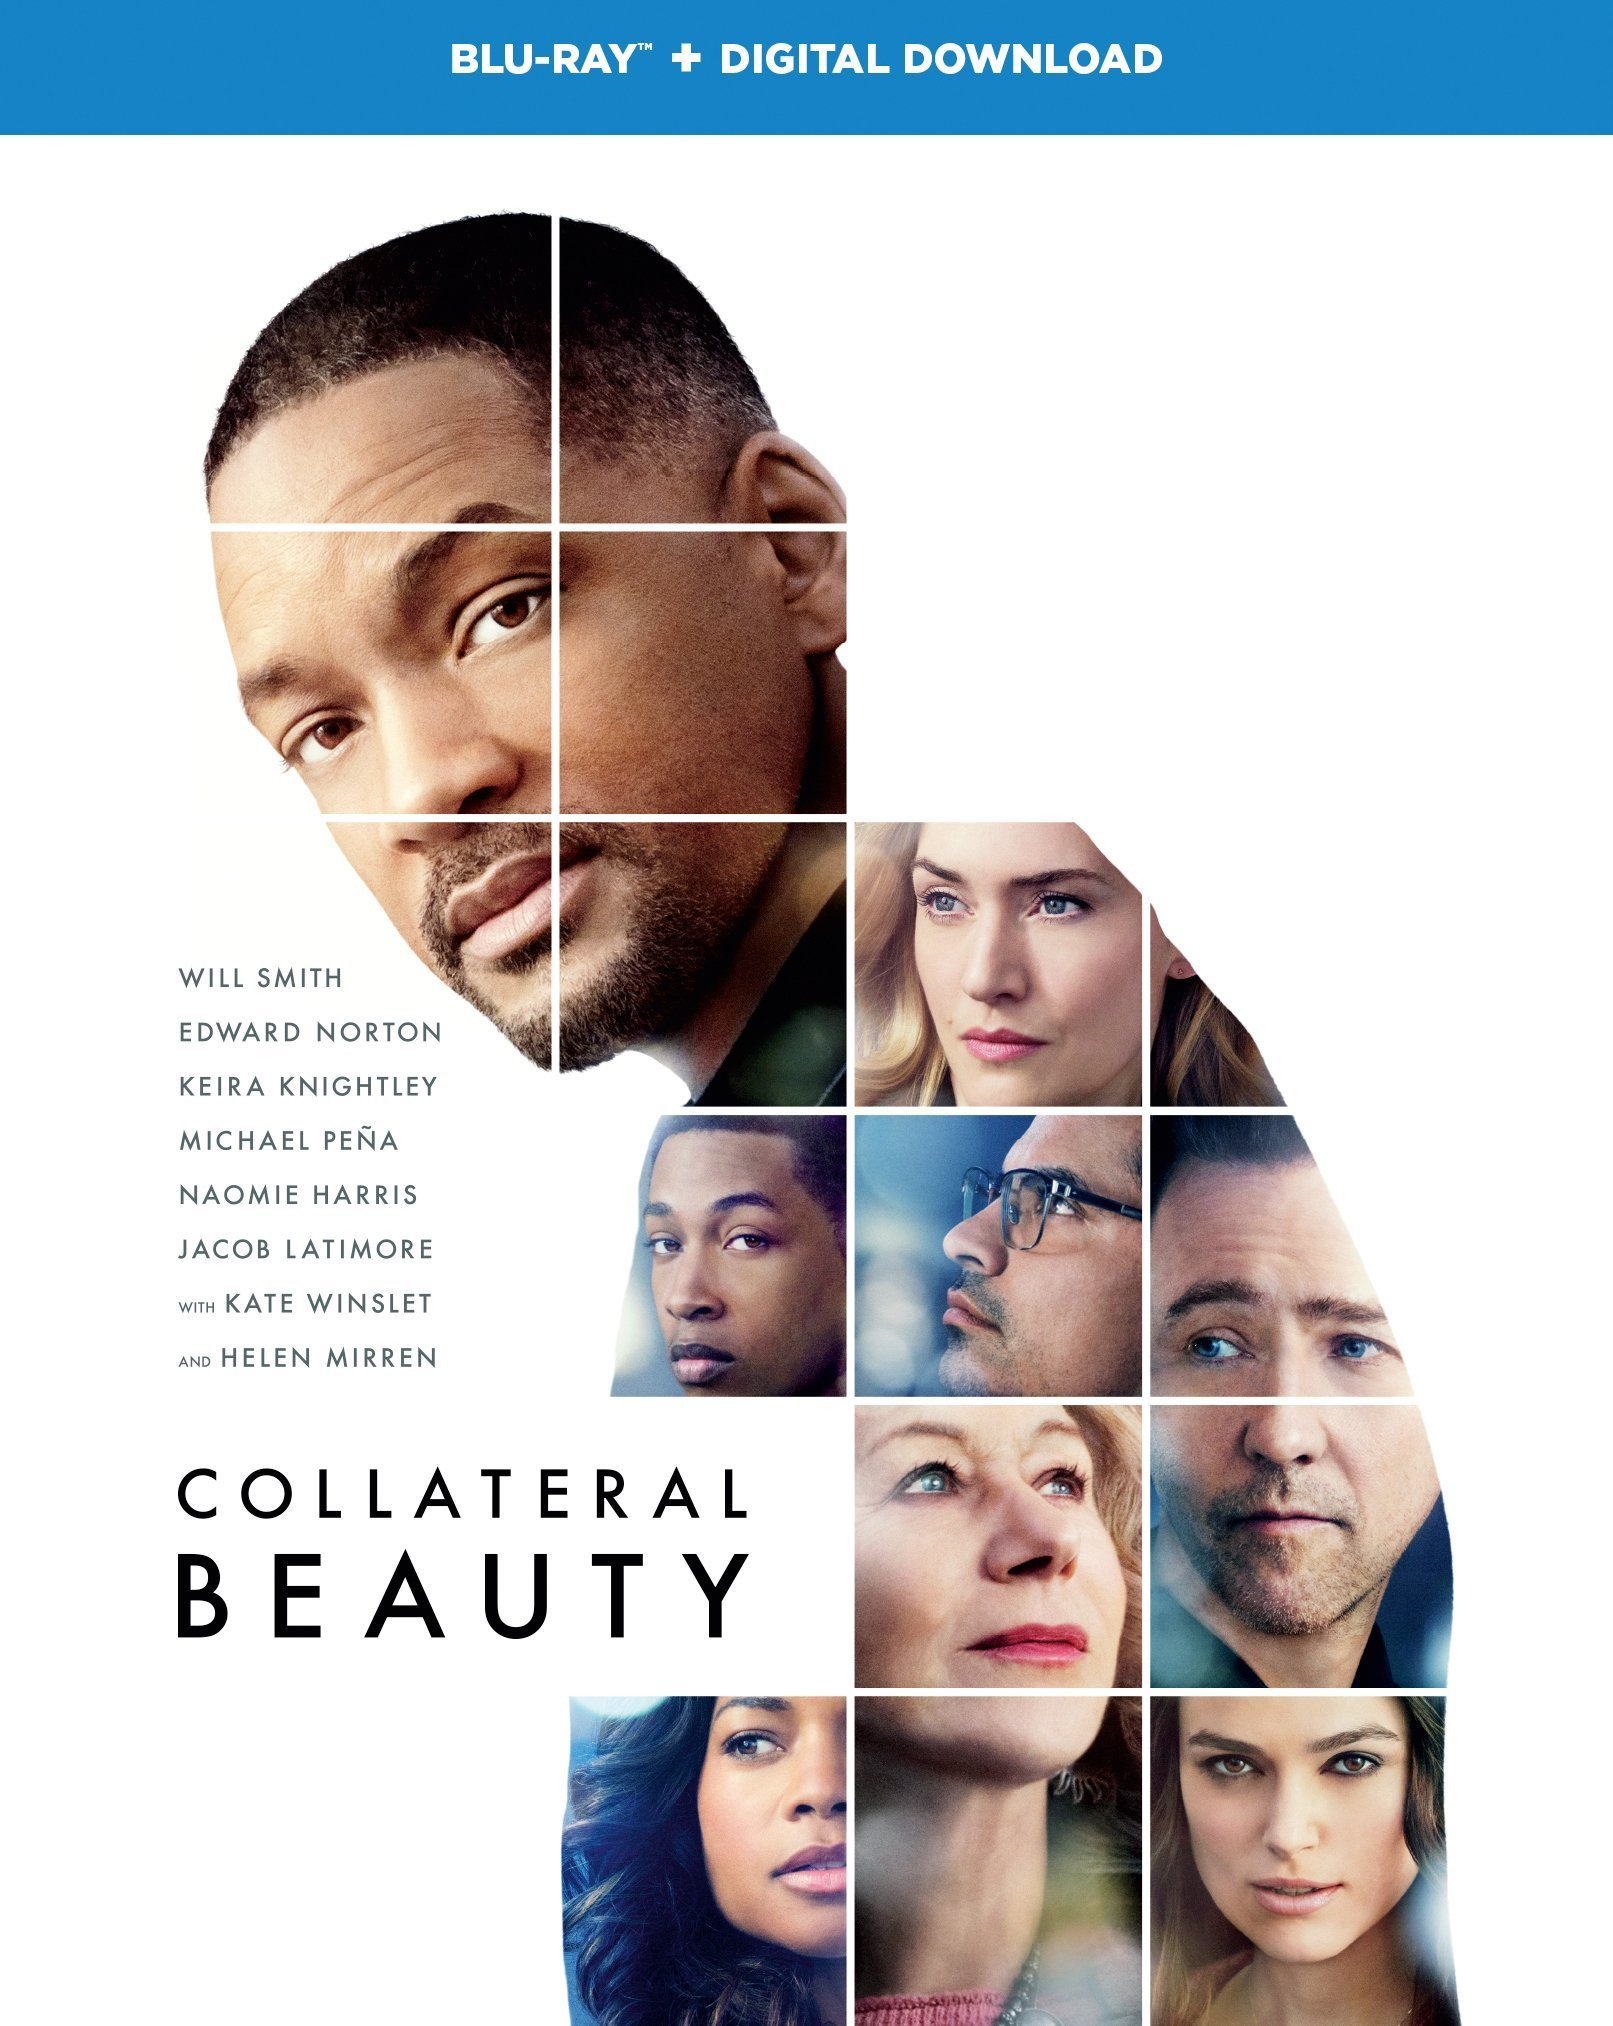 Collateral Beauty (2016) poster image